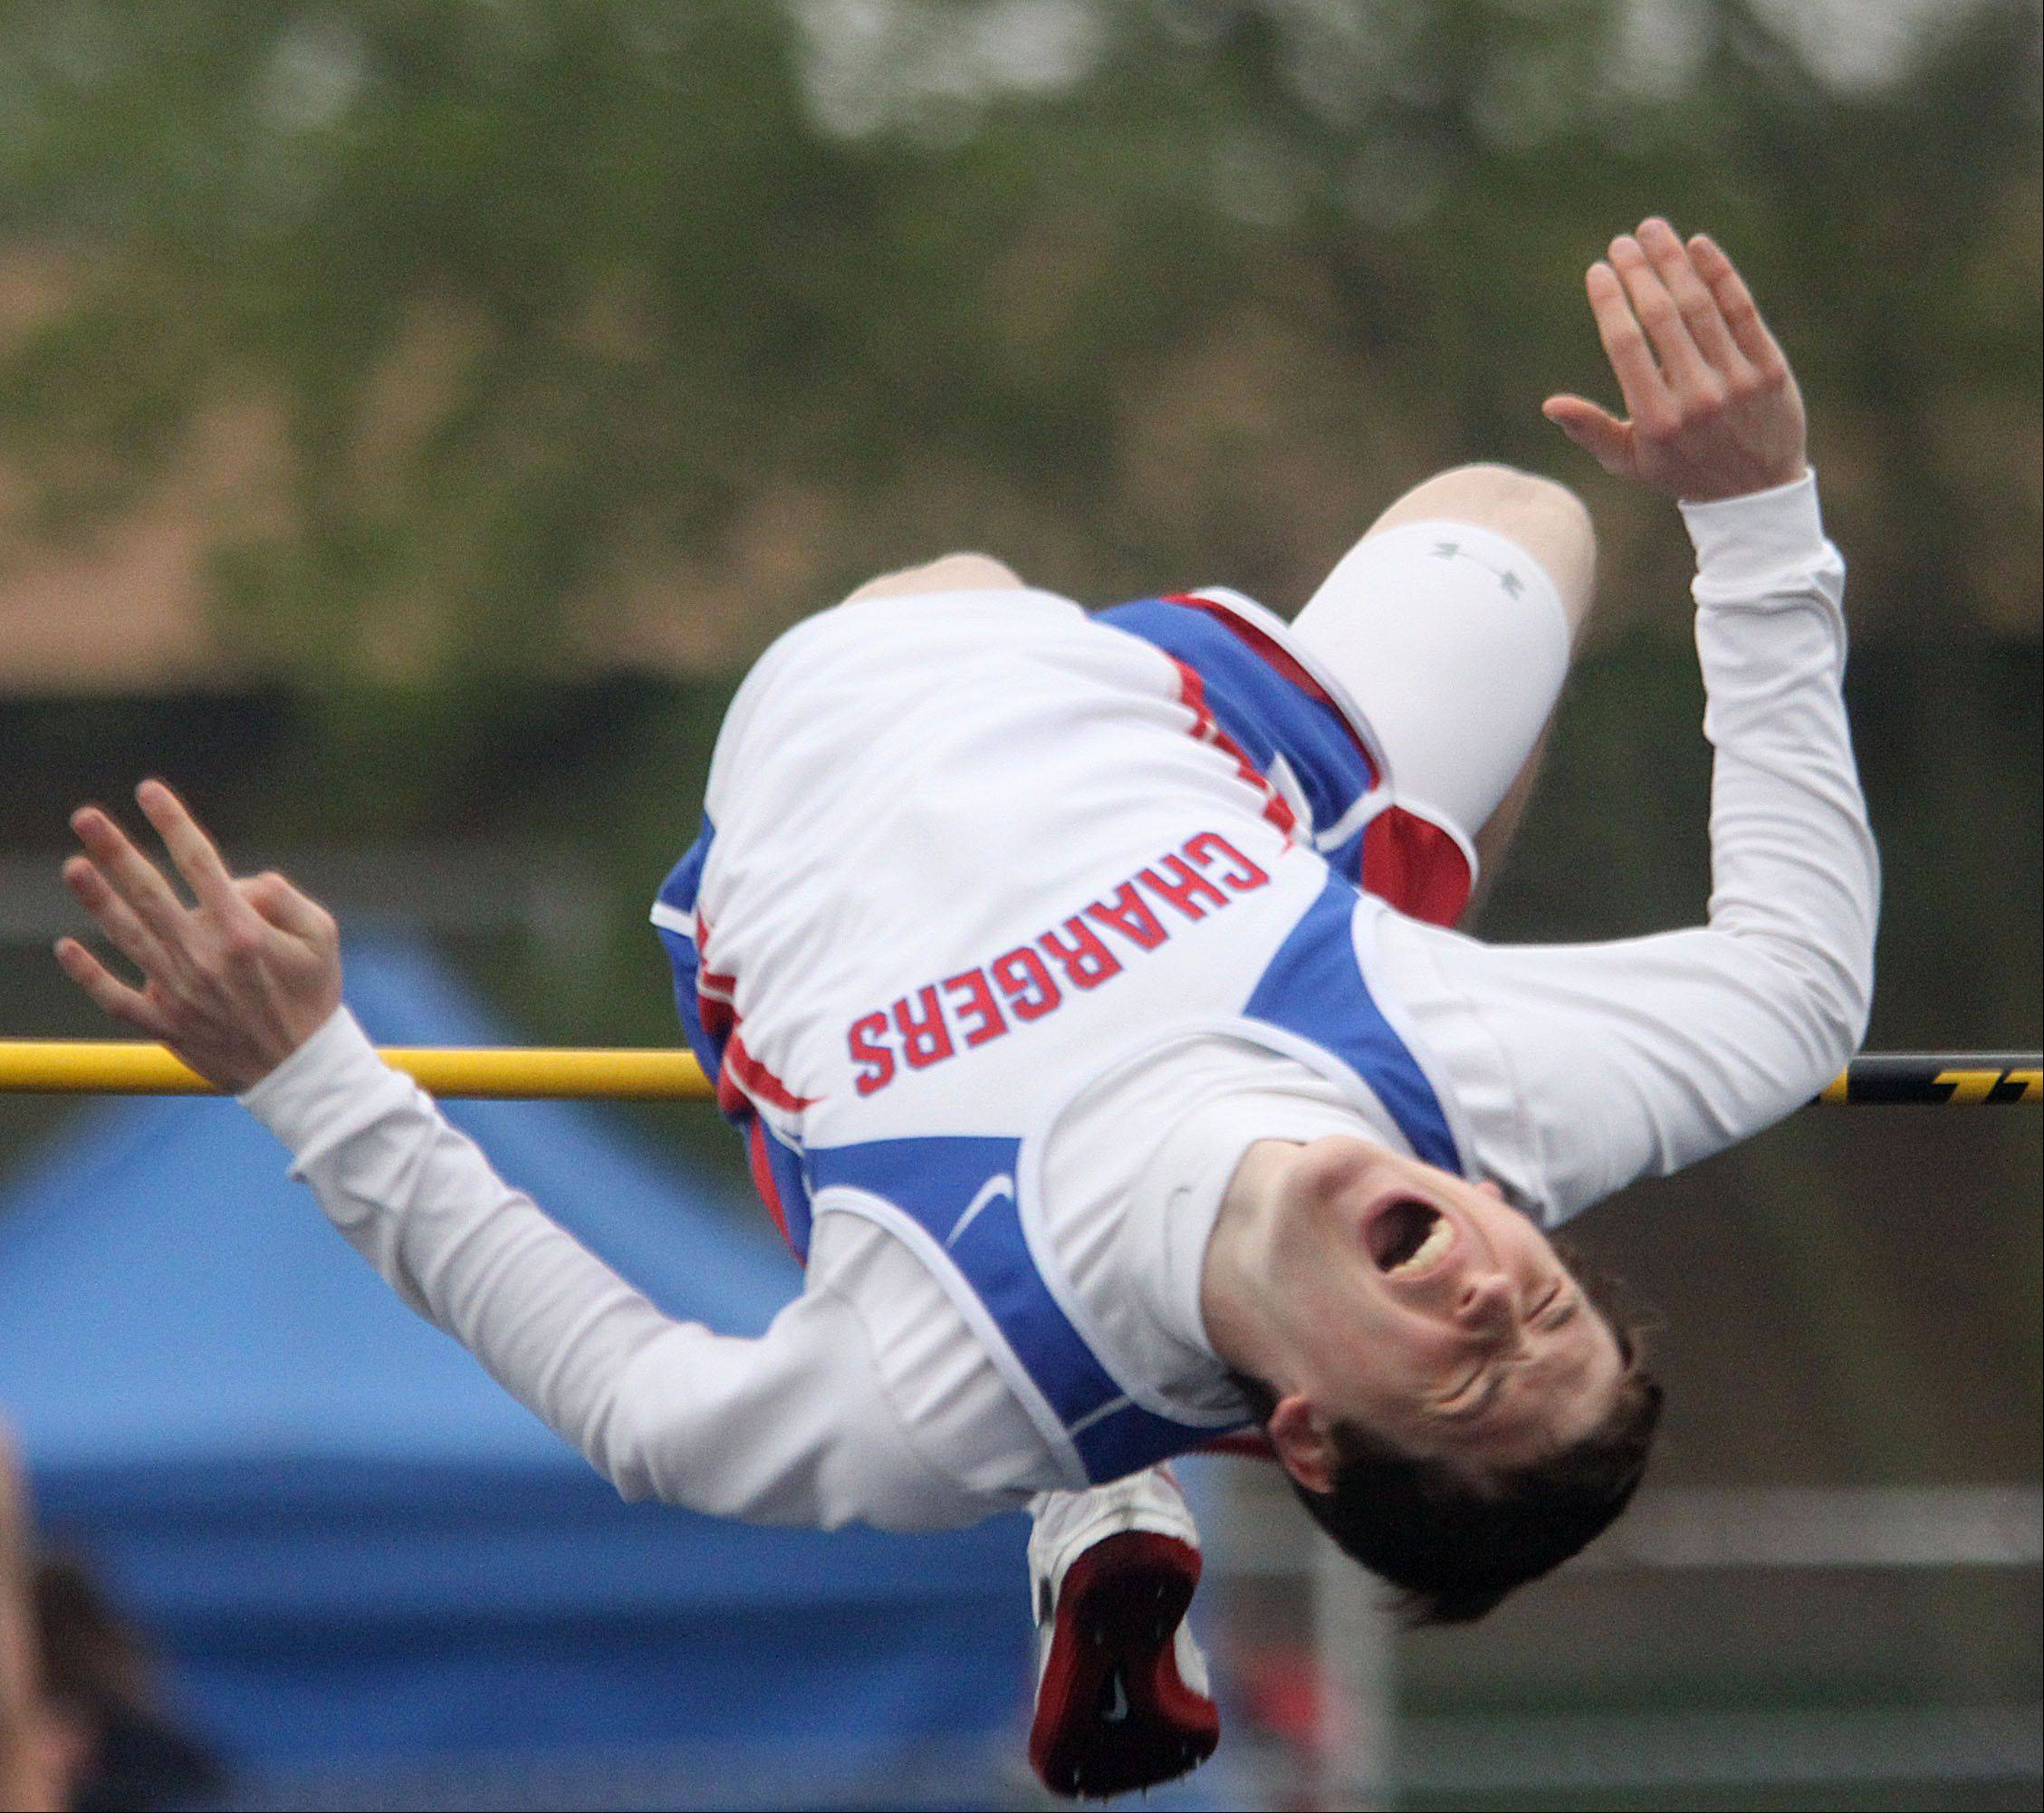 Dundee-Crown's Trevor Downing clears the bar in the high jump event at the Fox Valley Conference track meet Friday.